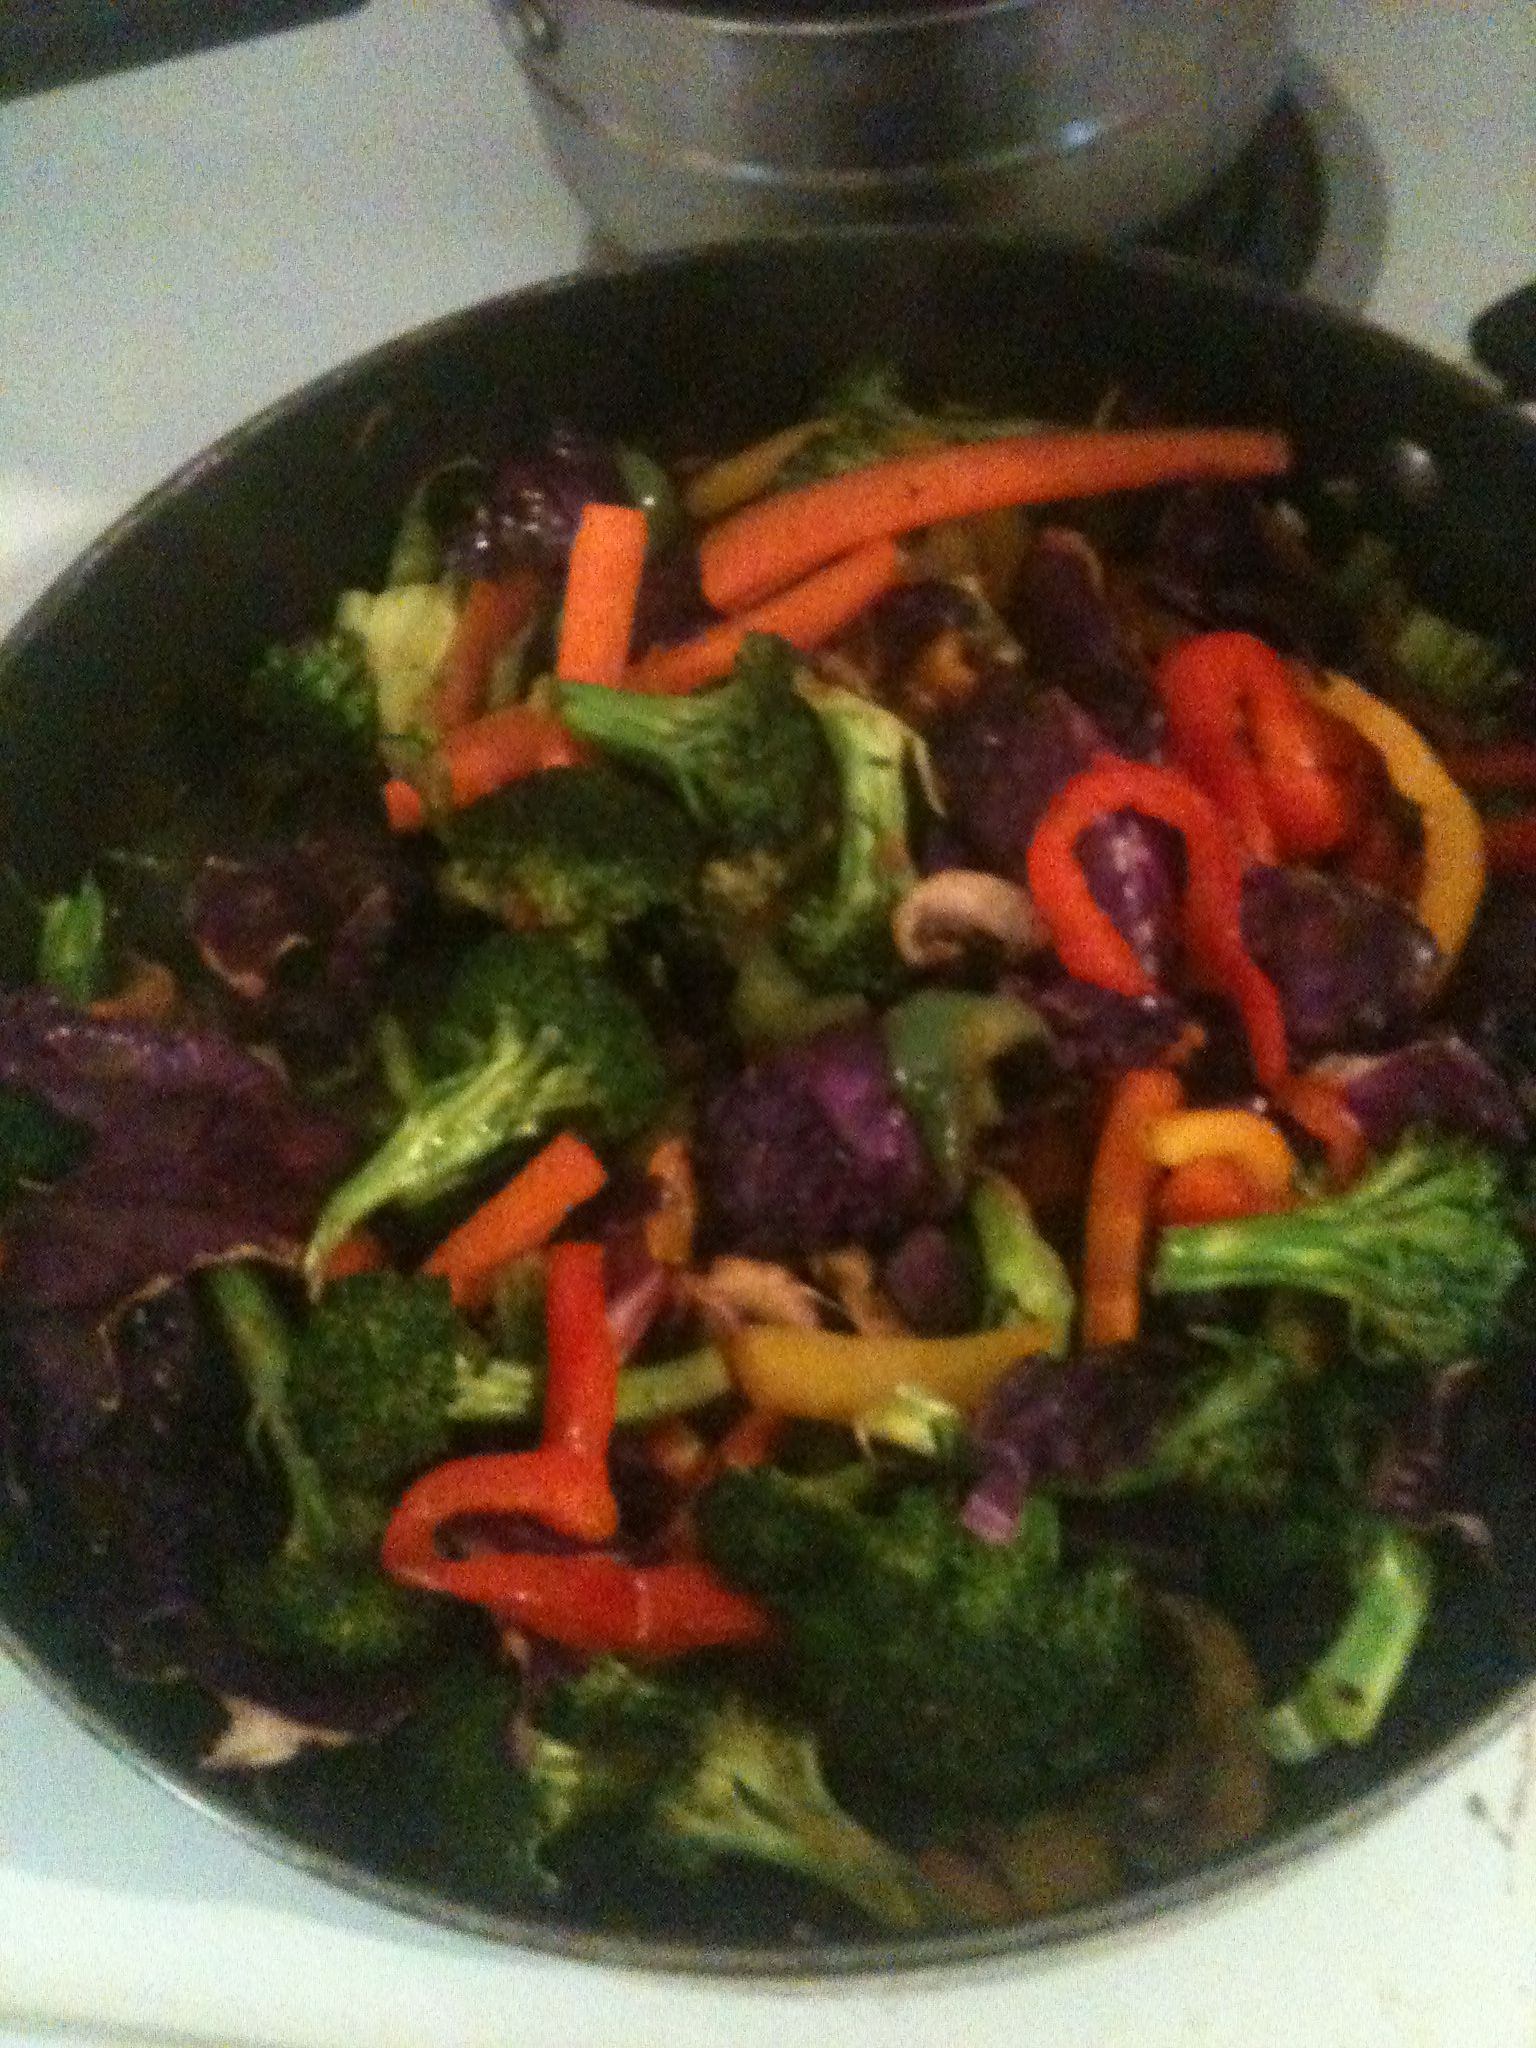 SIMPLE & HEALTHY CHINESE! sauteed fresh broccoli, carrots, peppers, red cabbage, baby portobella mushrooms. Also use asparagus, cauliflower, or any other veggies you have on hand. Spice with chopped garlic or garlic powder, chili powder, cumin, and amino braggs to replace soy sauce.